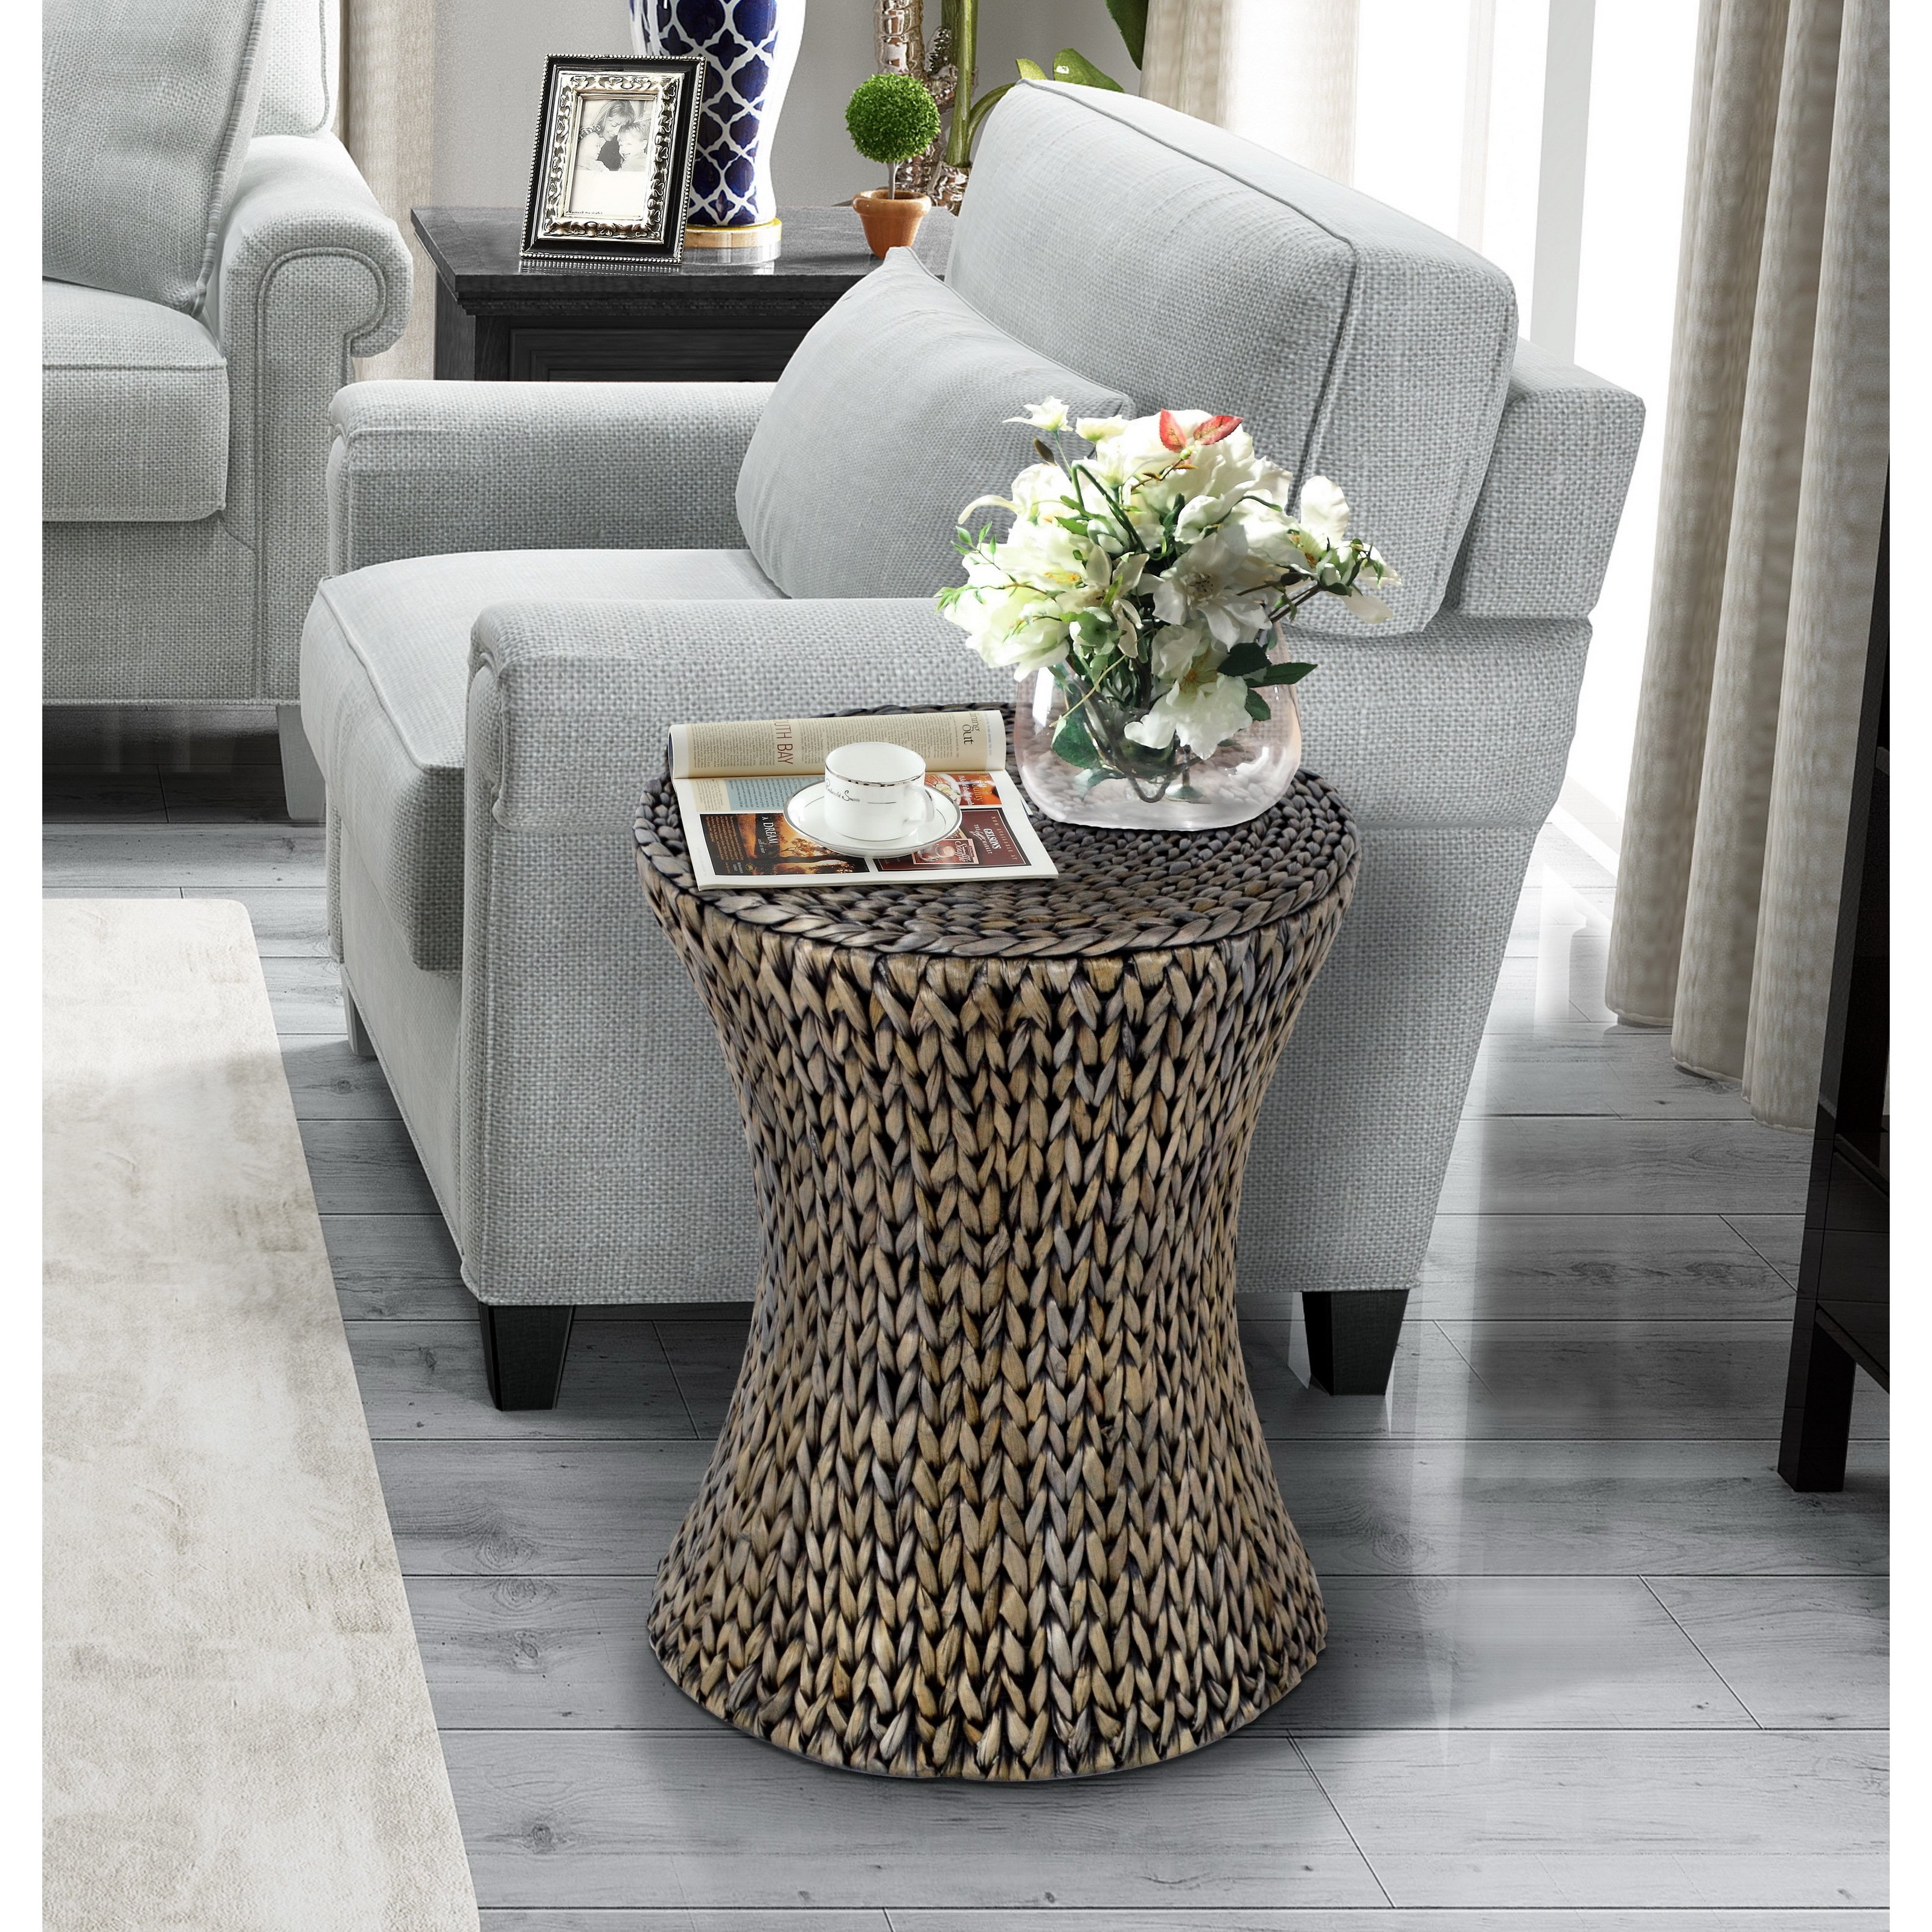 gallerie decor hourglass accent table free shipping room essentials mixed material today couch tables target tall small round dining legs wood victorian living furniture garden